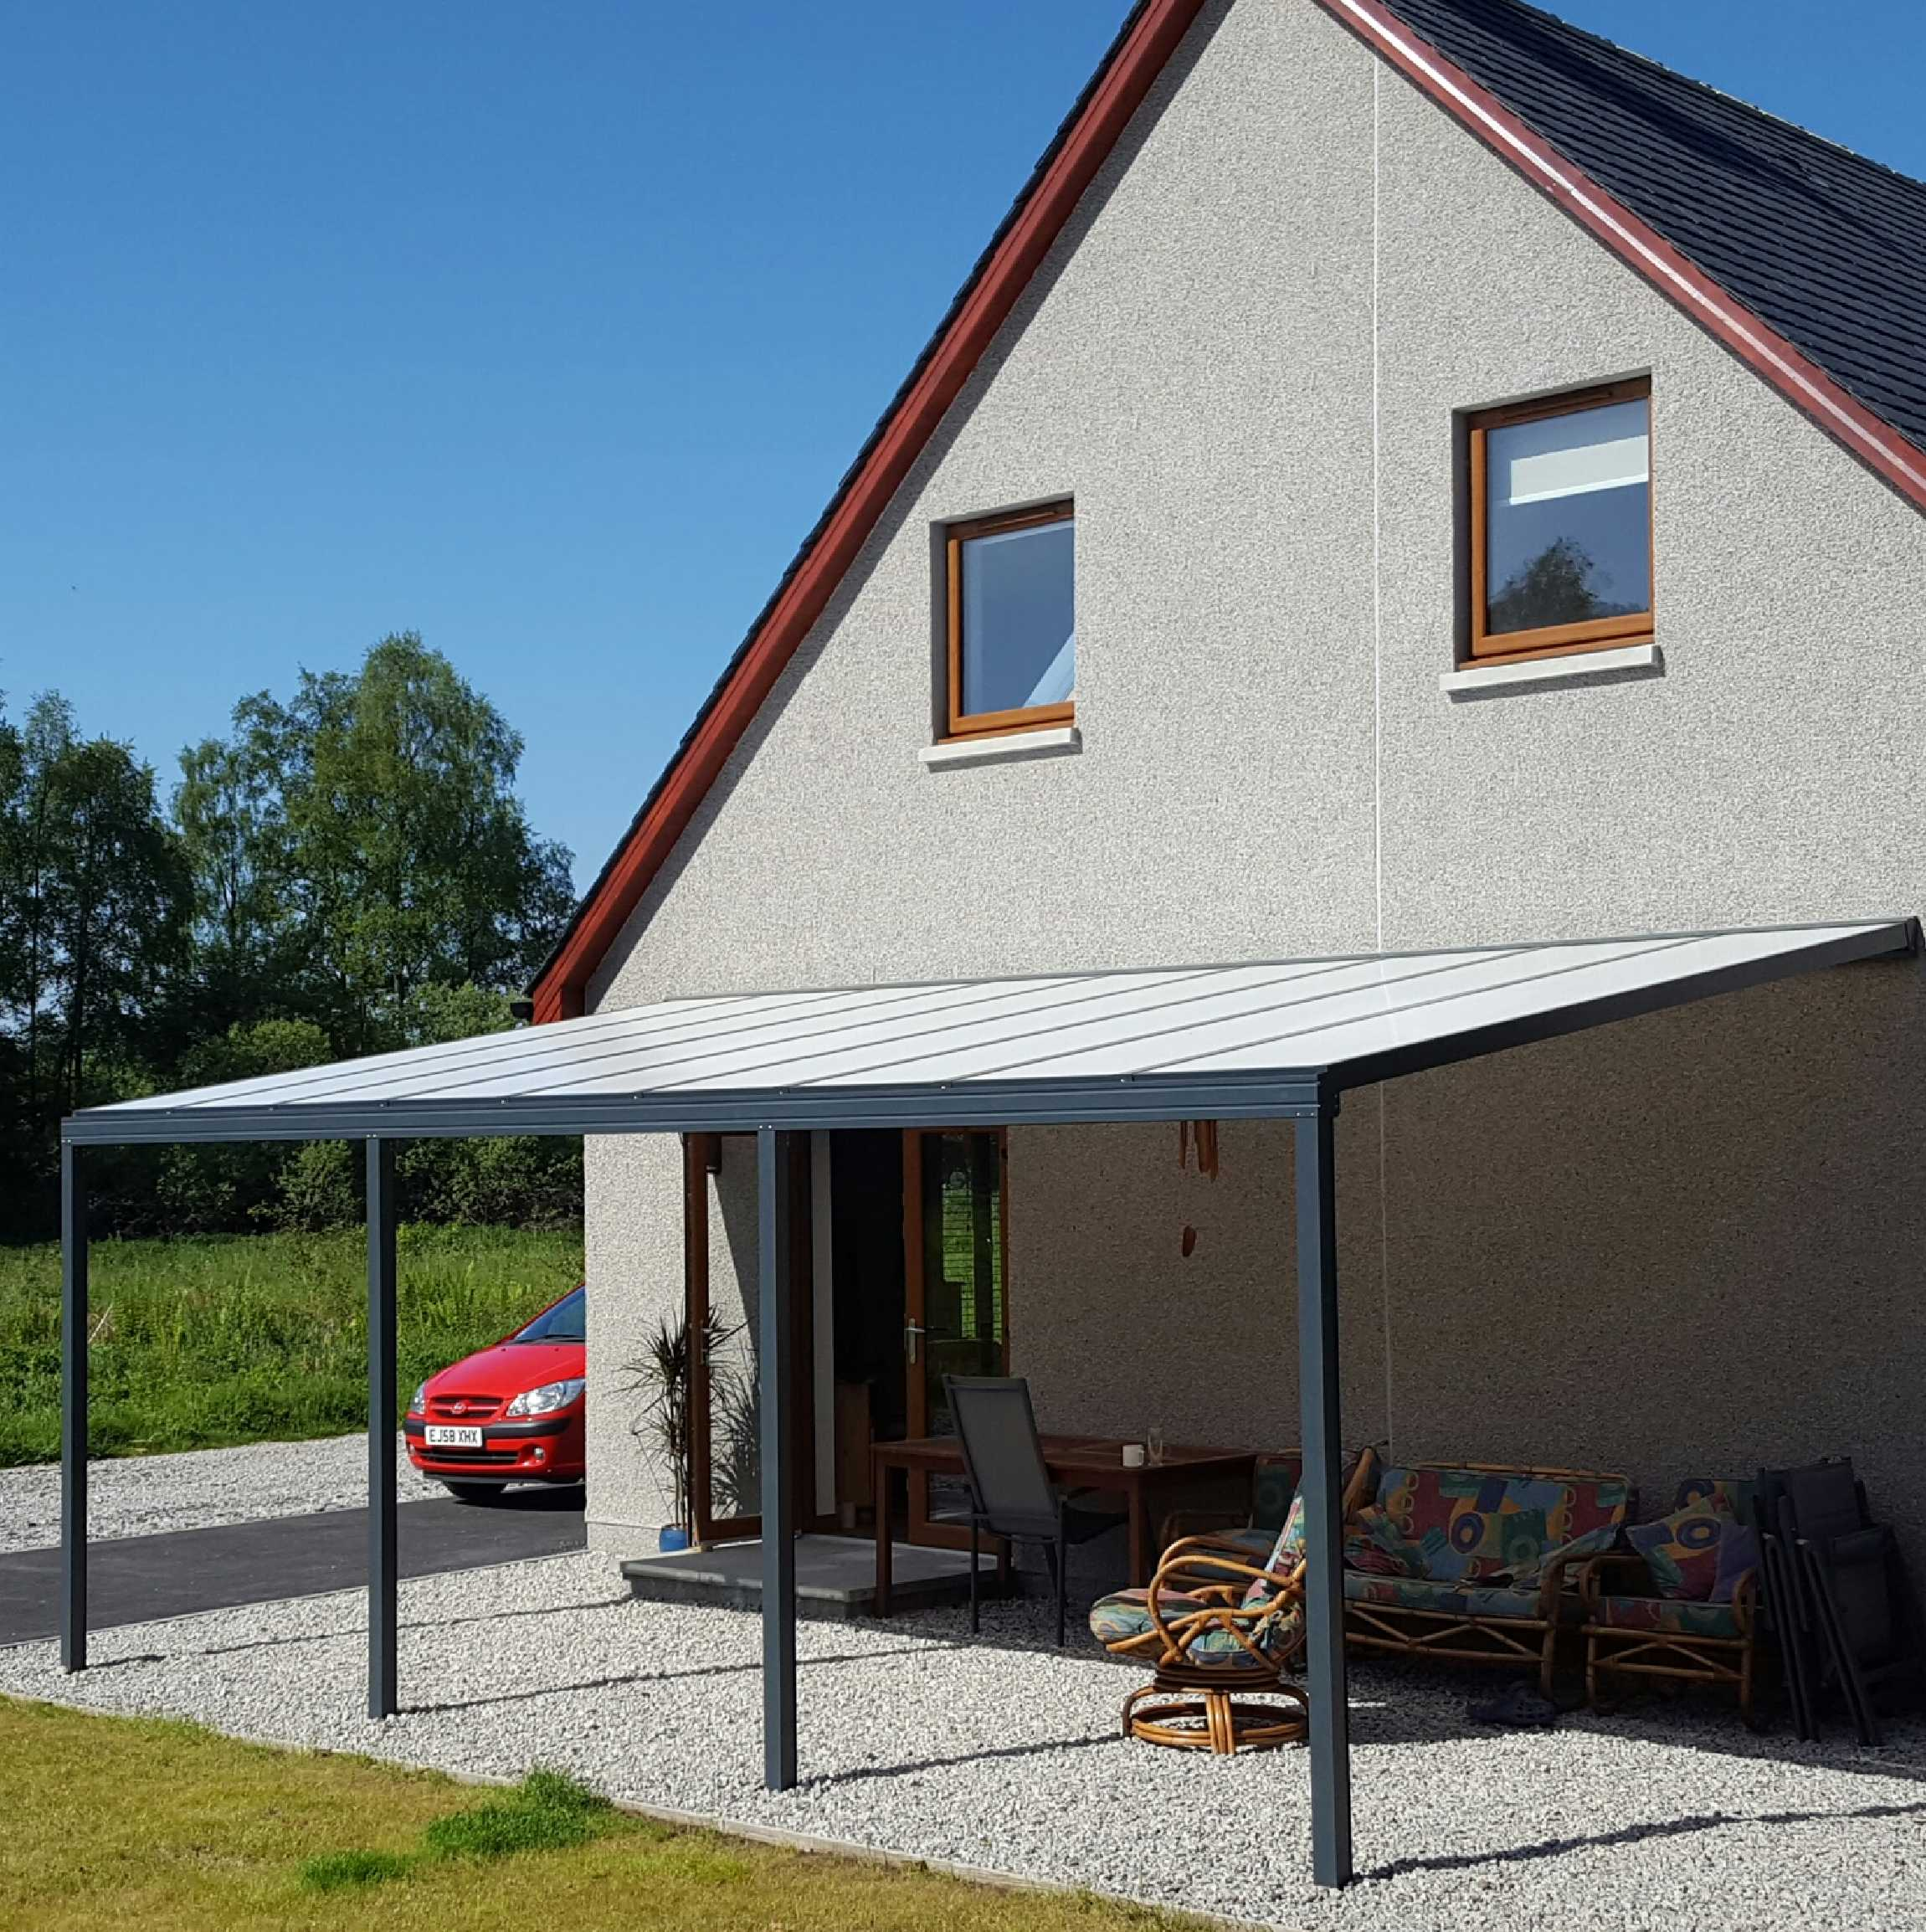 Great selection of Omega Smart Lean-To Canopy, Anthracite Grey, 16mm Polycarbonate Glazing - 7.8m (W) x 4.0m (P), (4) Supporting Posts